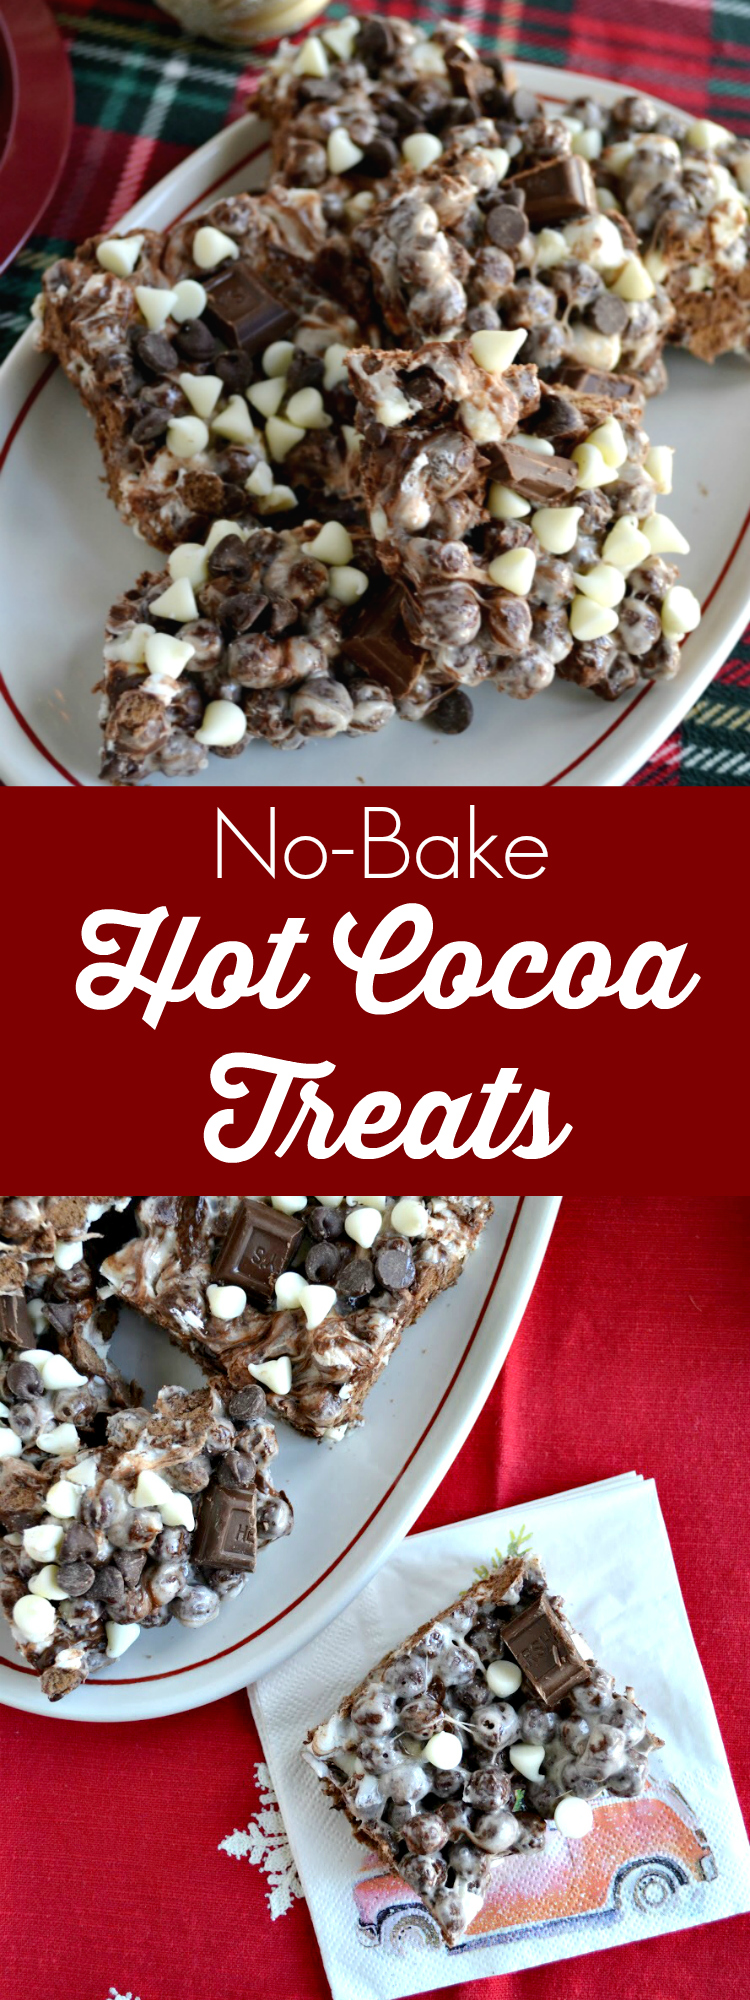 No-Bake Hot Cocoa Treats are an easy holiday dessert and the perfect way to get your cold weather fix no matter the time of year! Kids and grown-ups alike love these chocolate cereal treats. Give them a try at your next fall or winter gathering.